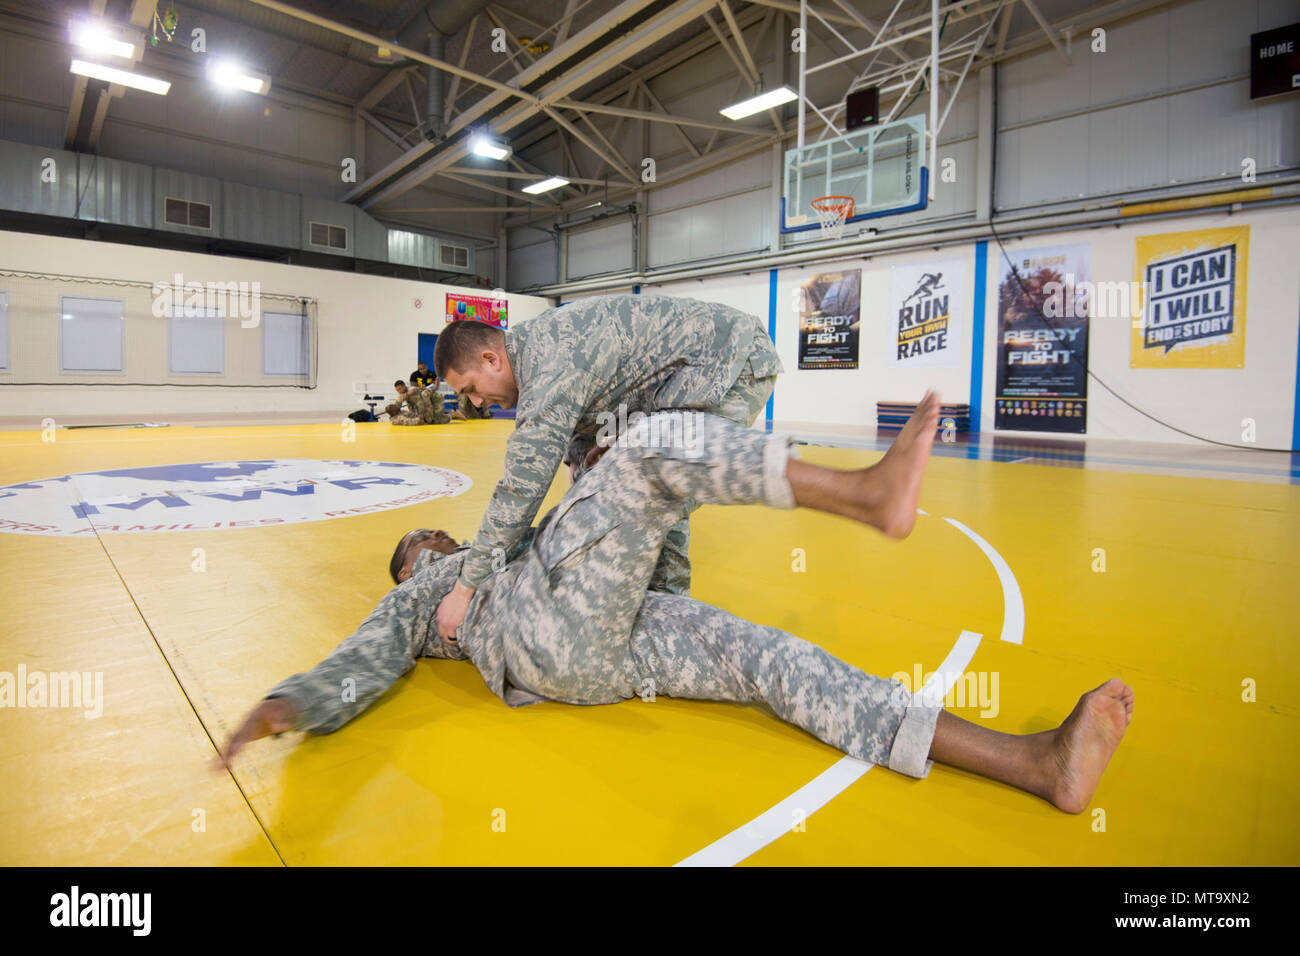 U.S. Air Force Staff Sgt. Mario Huerta, right, assigned to the SACEUR Security Detachment, controls the landing, after a hip throw, of U.S. Army Sgt. Terrance Simmons, with the Northern Law Center, 21st Theater Sustainment Command, during the Joint Tactical Combatives Course, on Chièvres Air Base, Belgium, March 9, 2018. - Stock Image